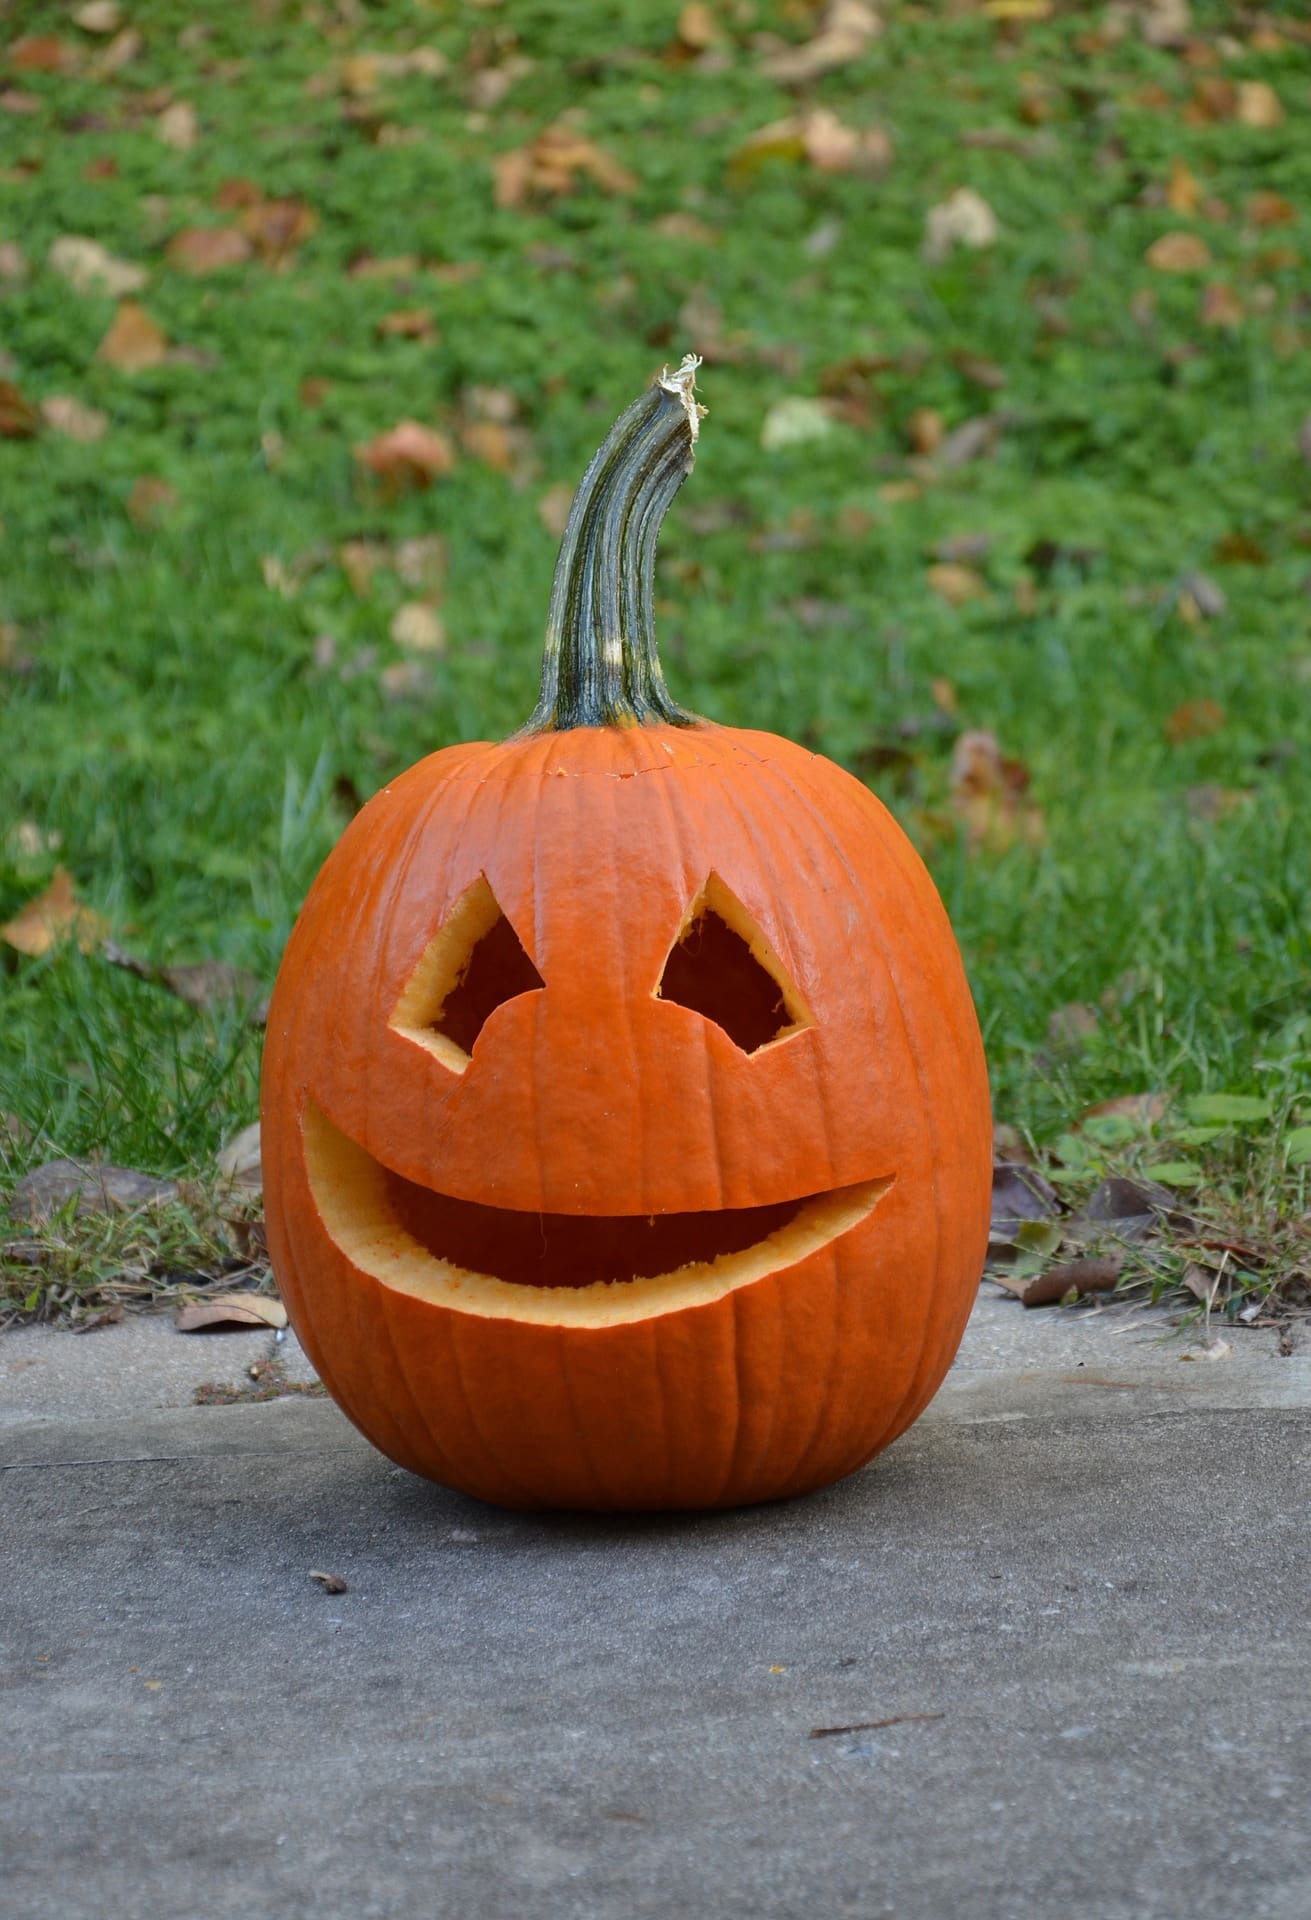 Carved pumpkin with a smiley face.